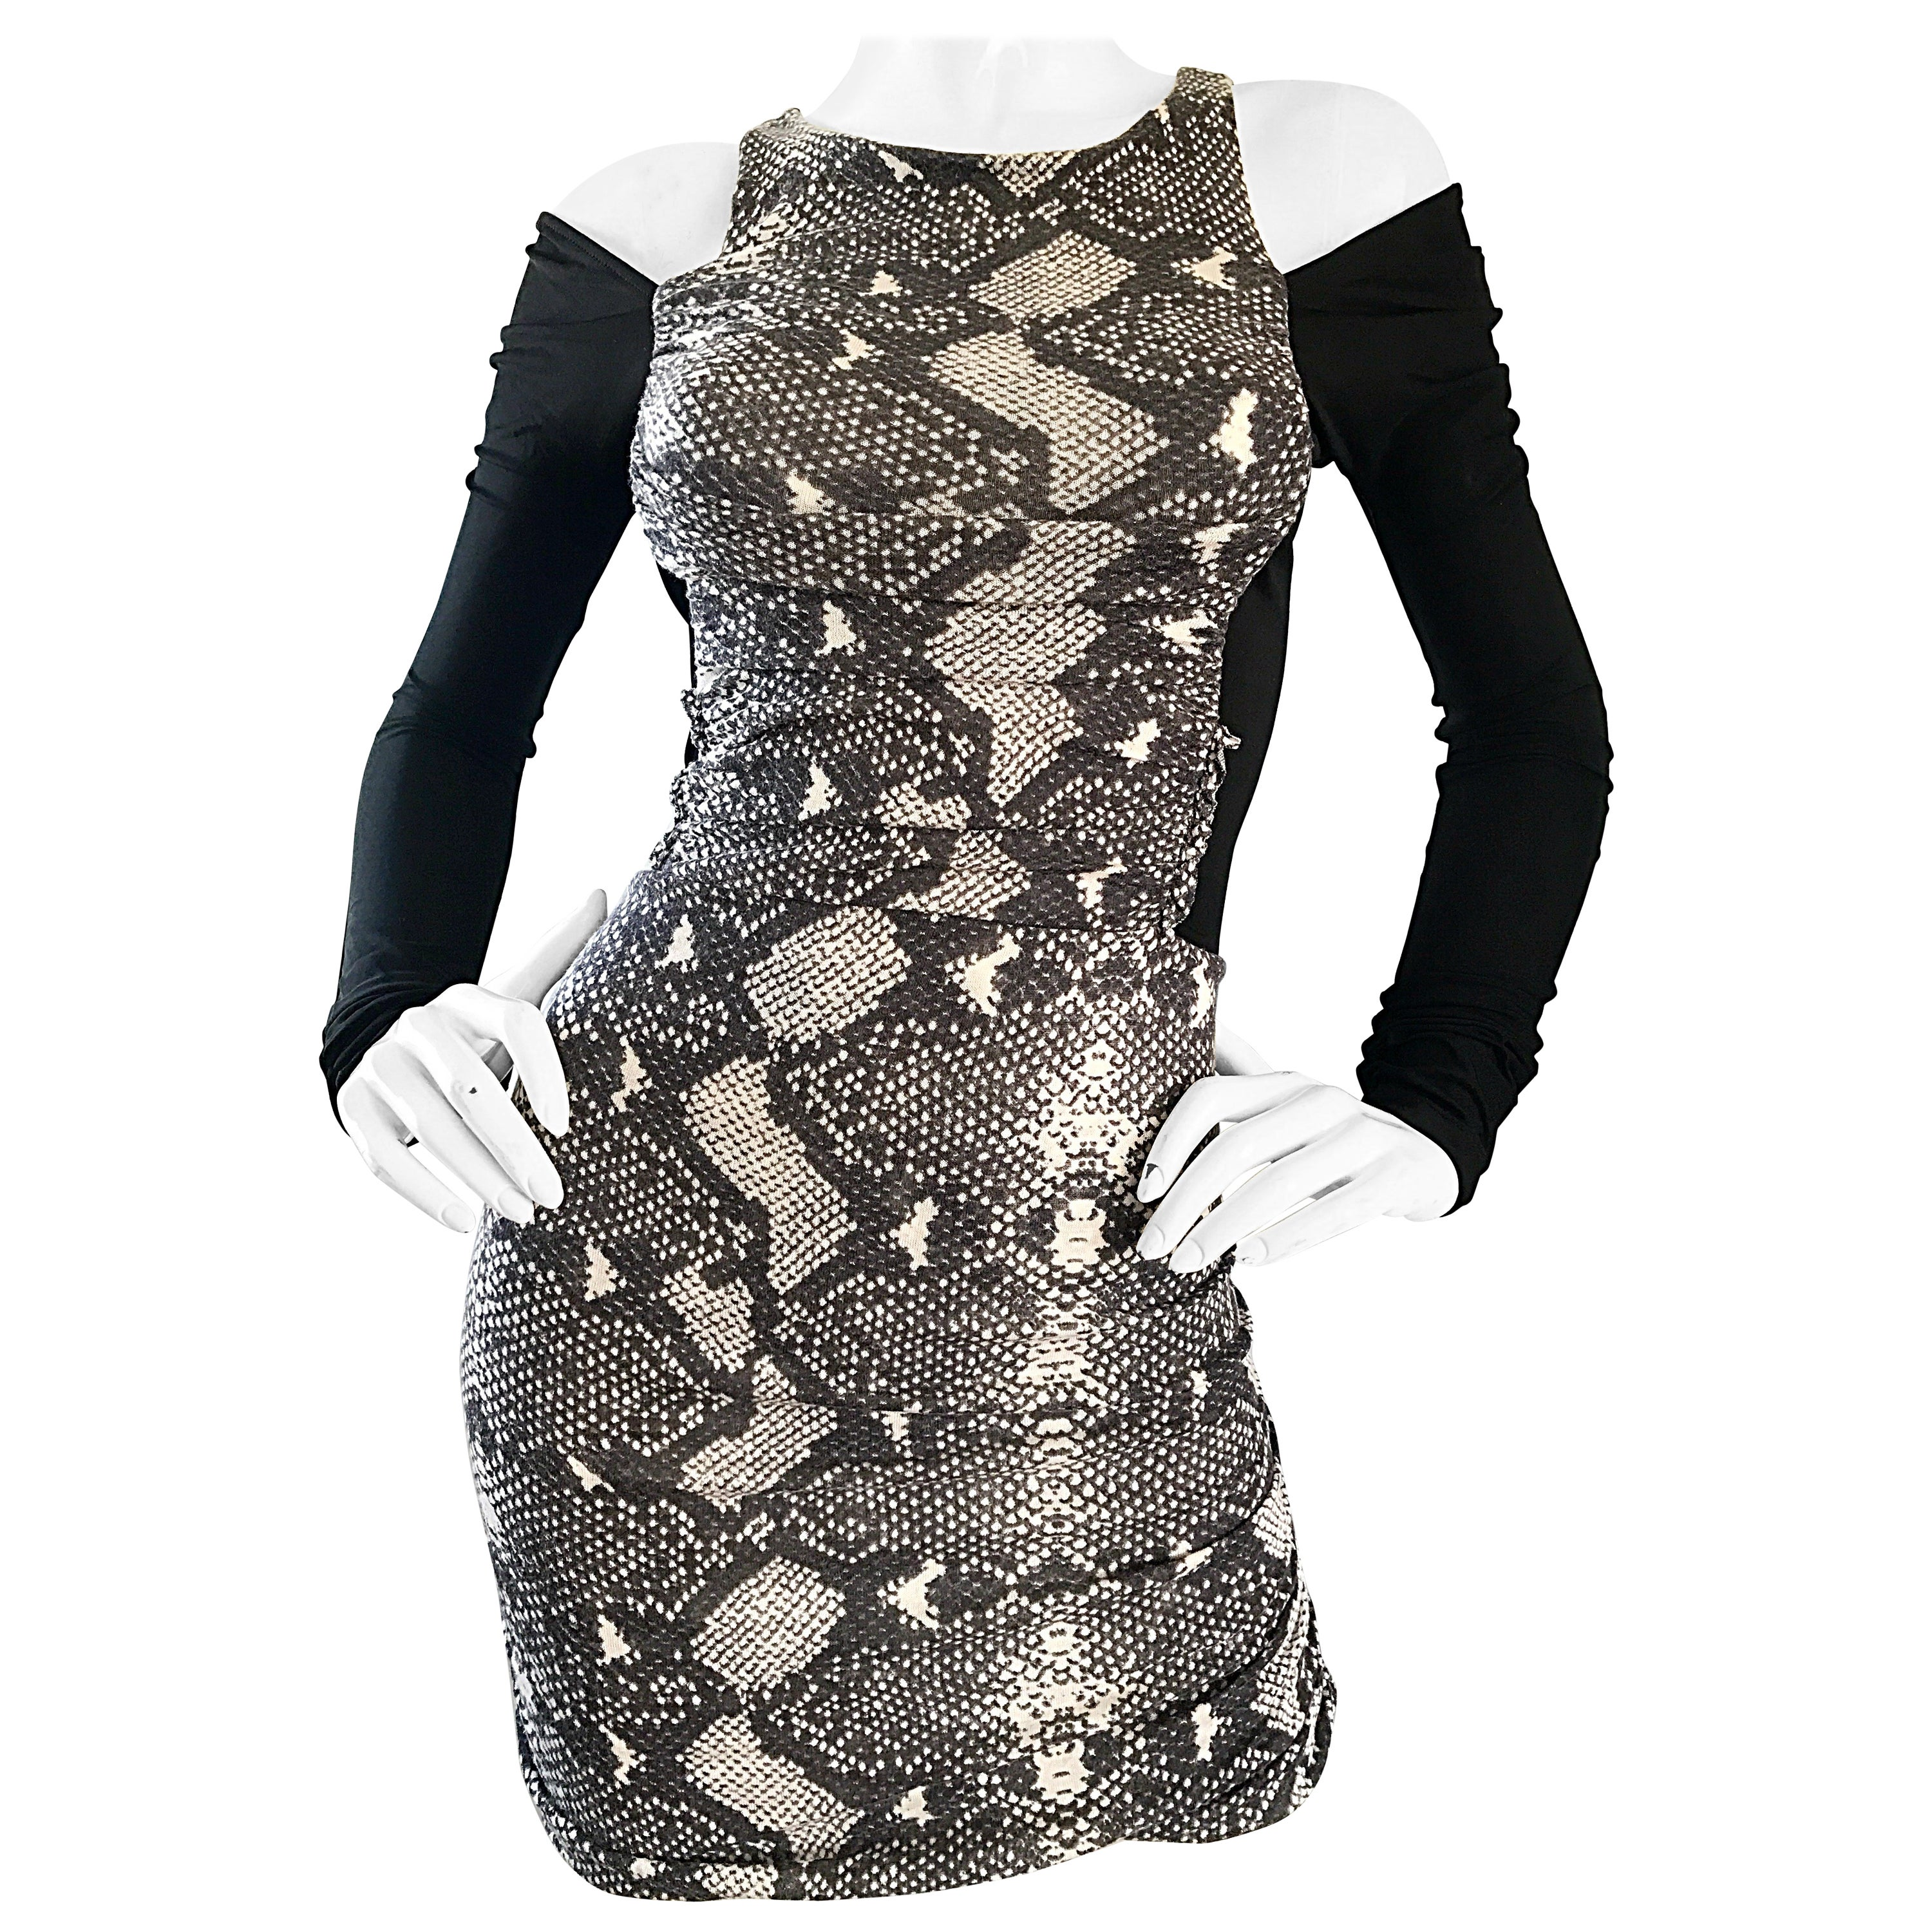 1990s PIERRE BALMAIN Black and White Snakeskin Cold Shoulder Sexy Dress